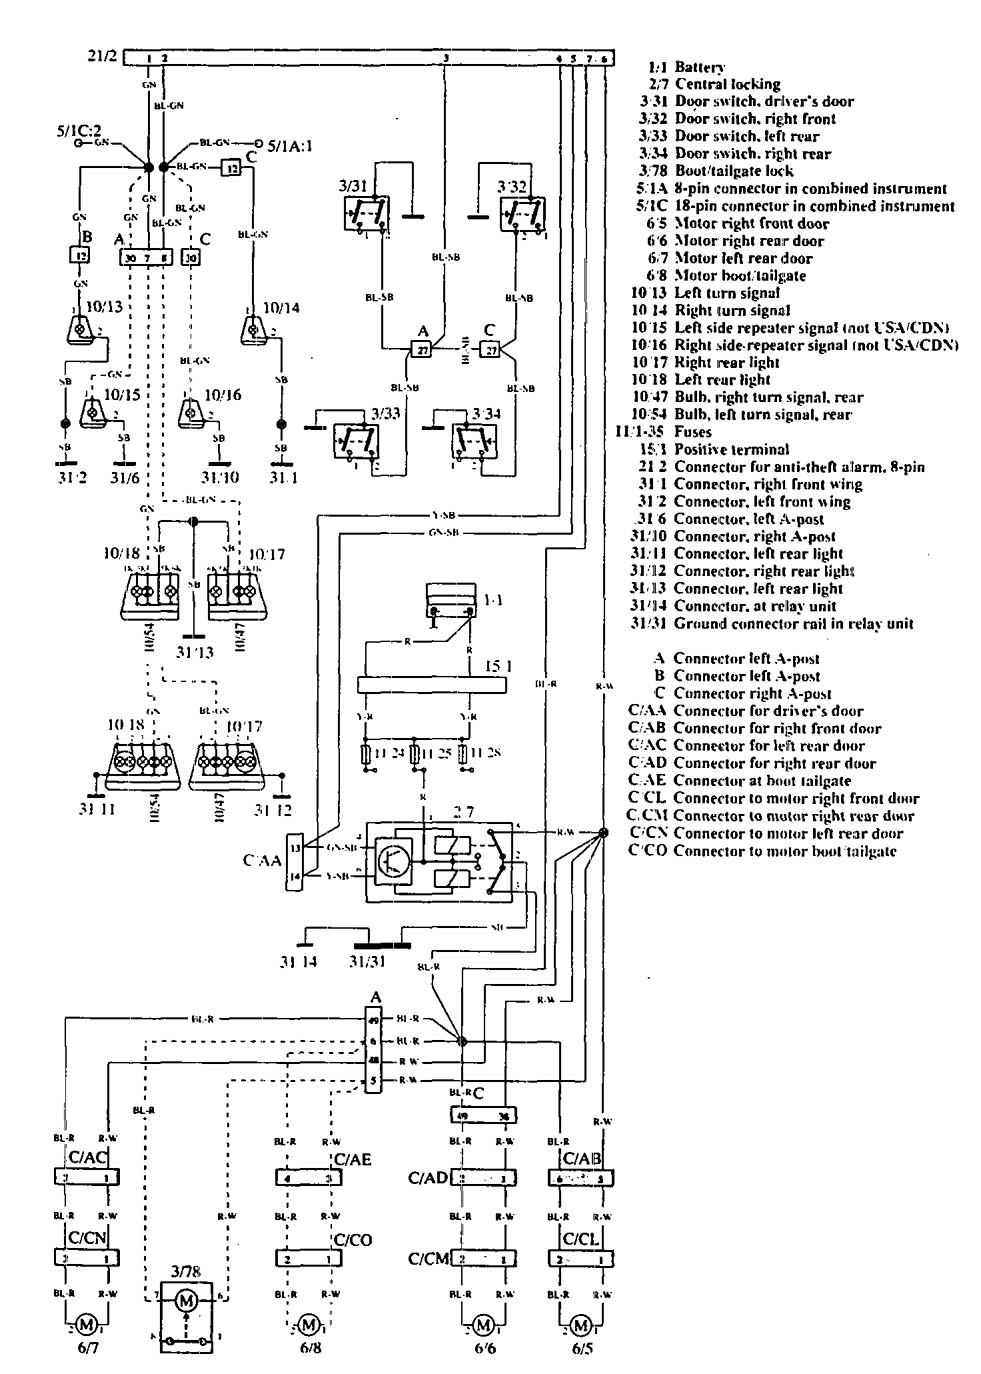 wiring diagram for 1999 volvo s70 wiring diagram